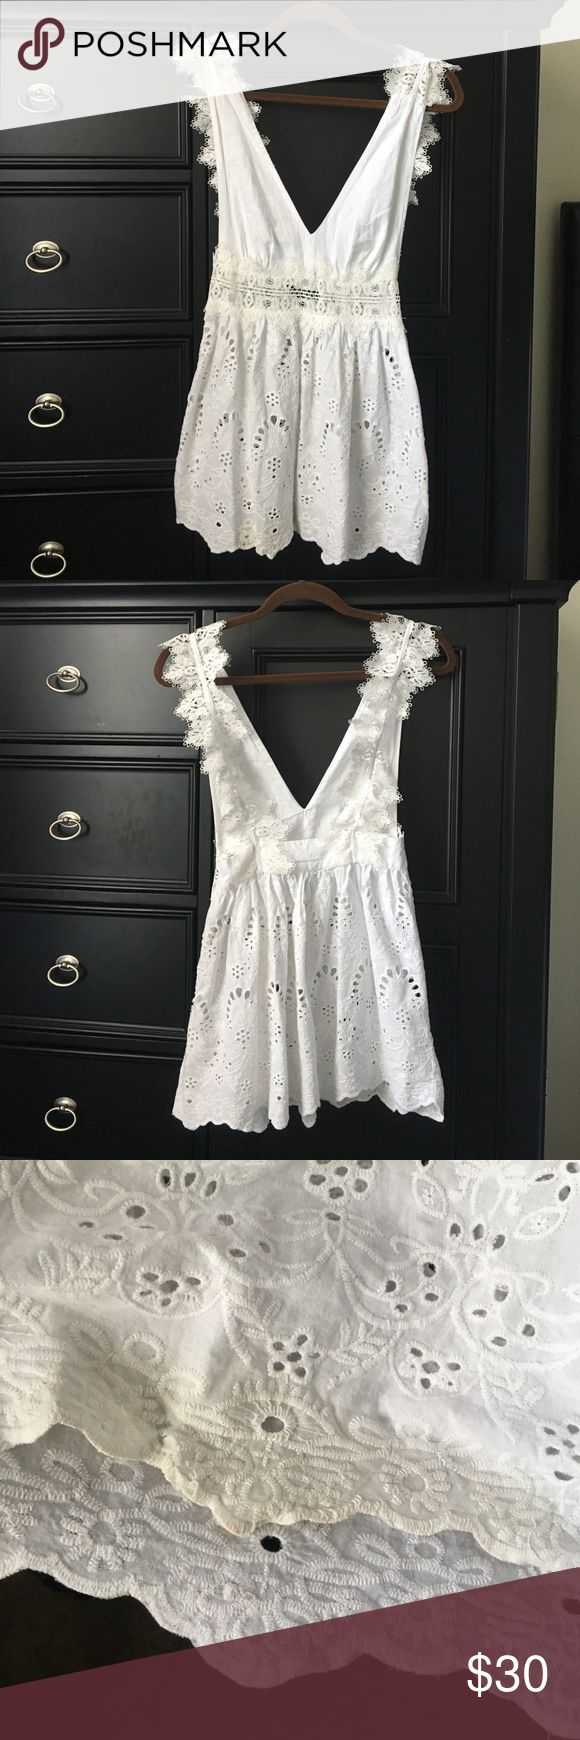 Kendall & Kylie Dress White Embroidered Lace Dress. NEVER WORN AND NWT. I didn't realize there is a stain or discoloration on the end of the dress when I bought it. There is also a little tear where the stain is. Please look at photos for reference. Kendall & Kylie Dresses